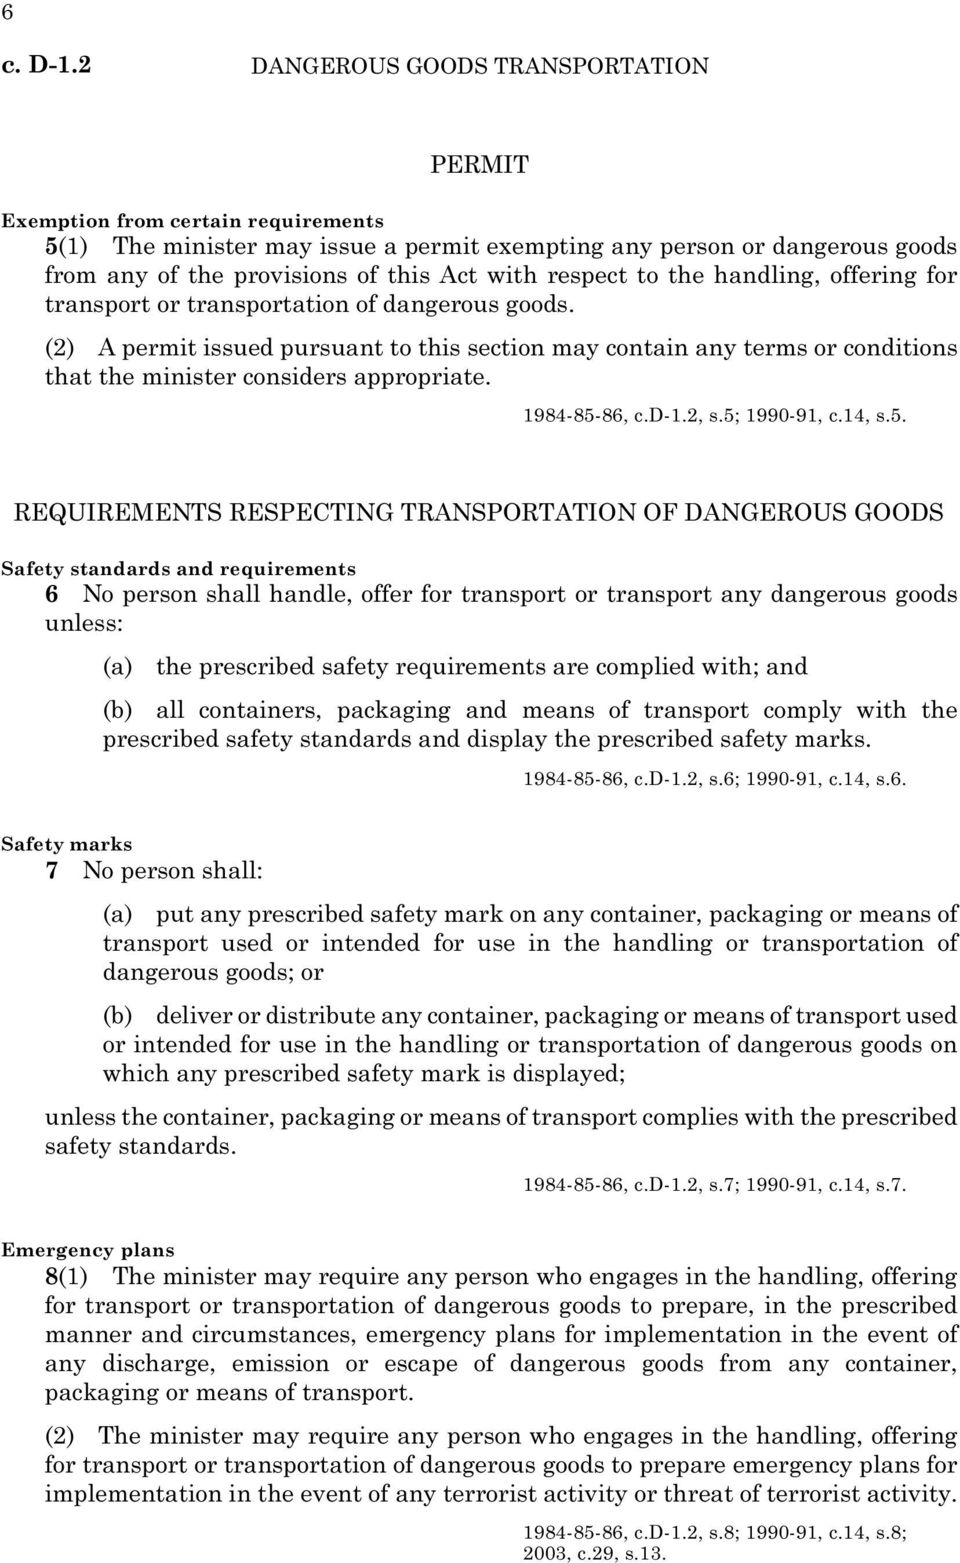 respect to the handling, offering for transport or transportation of dangerous goods.